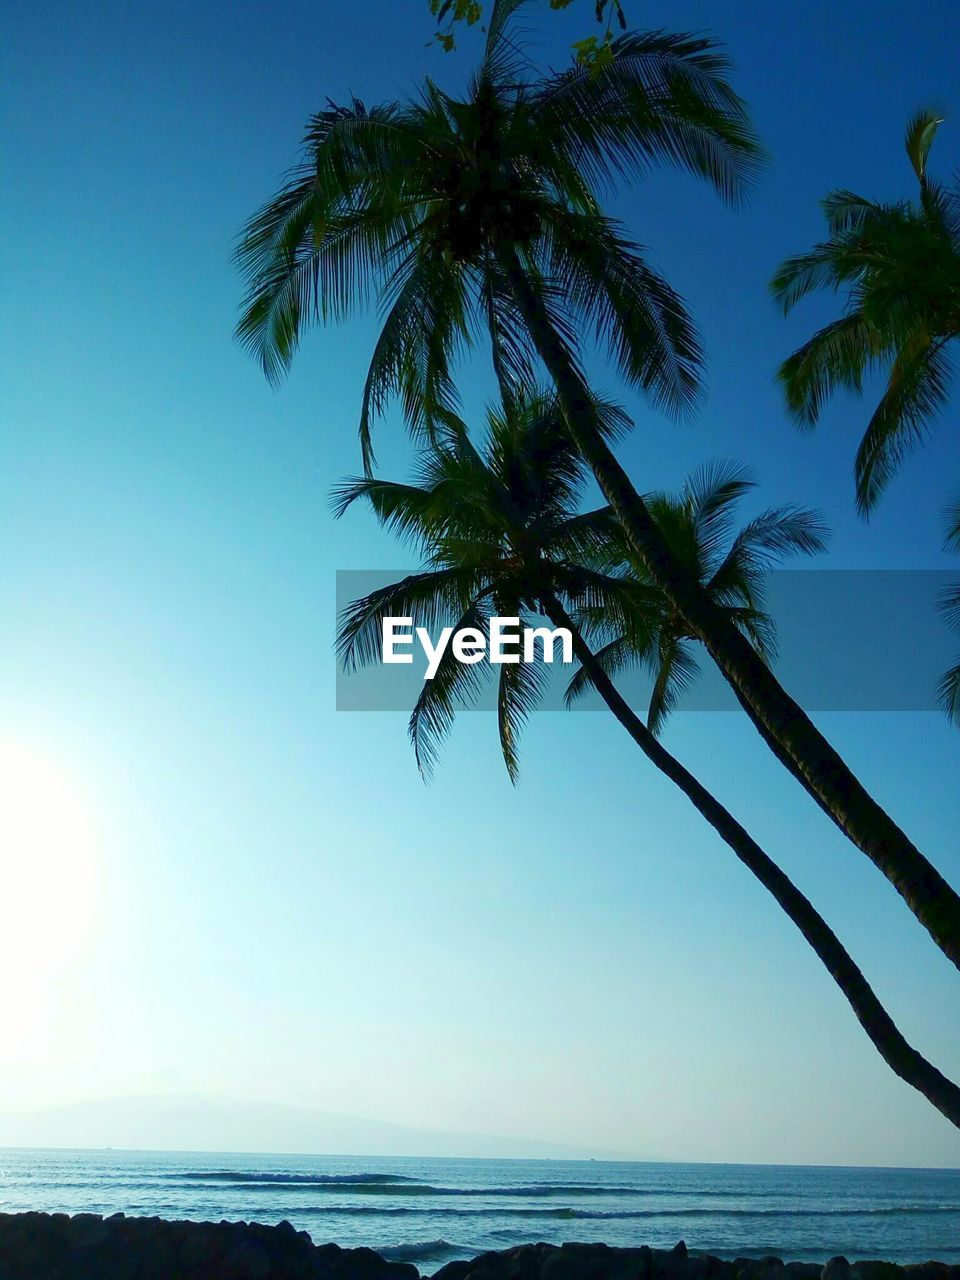 sea, palm tree, water, tranquil scene, horizon over water, scenics, tranquility, nature, beauty in nature, clear sky, beach, sky, outdoors, no people, blue, tree, day